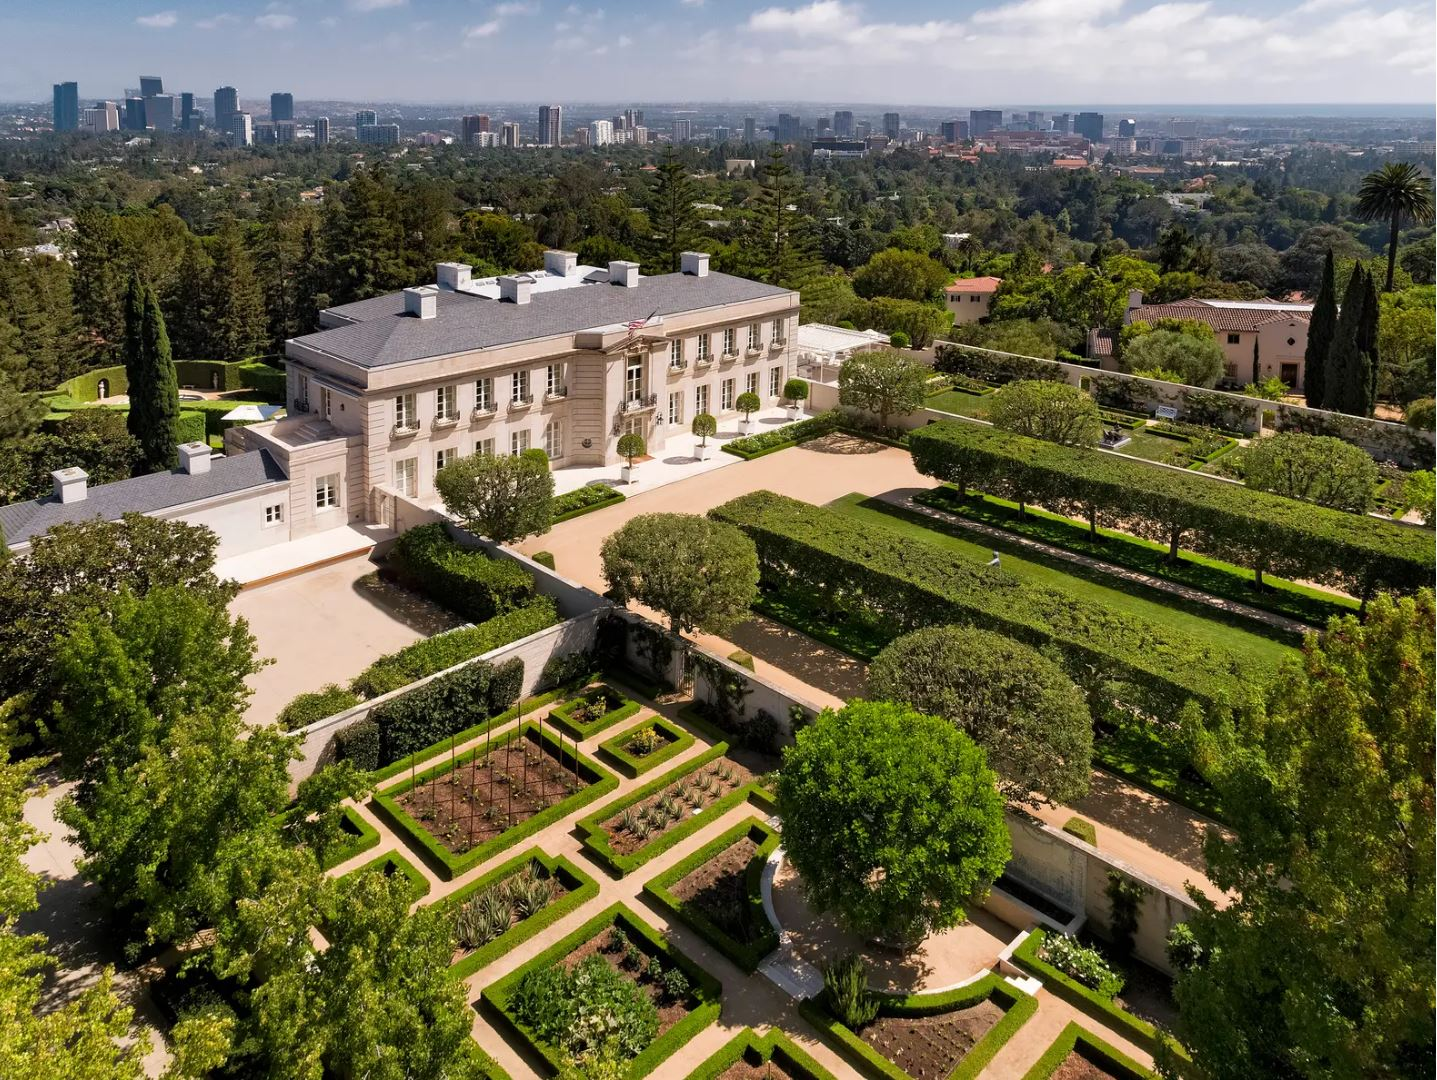 Most Expensive Homes sold within the past decade 2020 Jan - Bel Air Beverly Hillbillies Mansion CA - Hoey Team eXp Realty